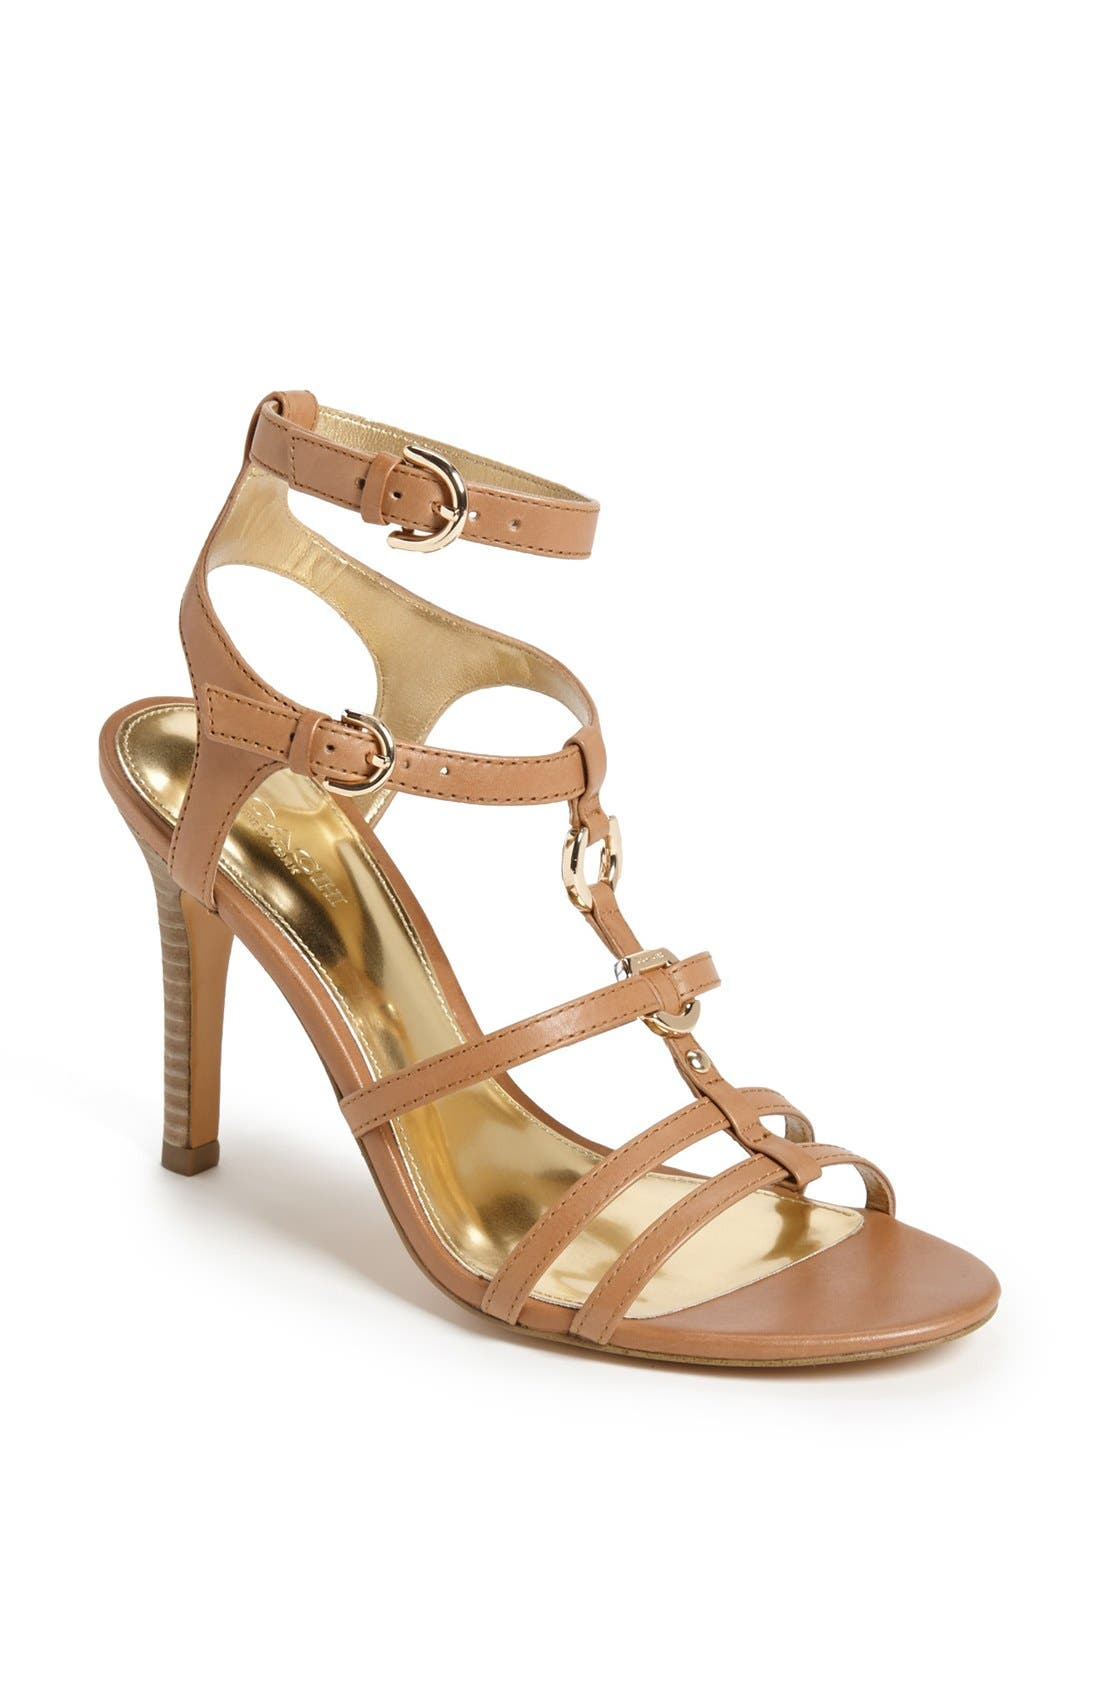 Alternate Image 1 Selected - COACH 'Hellen' Sandal